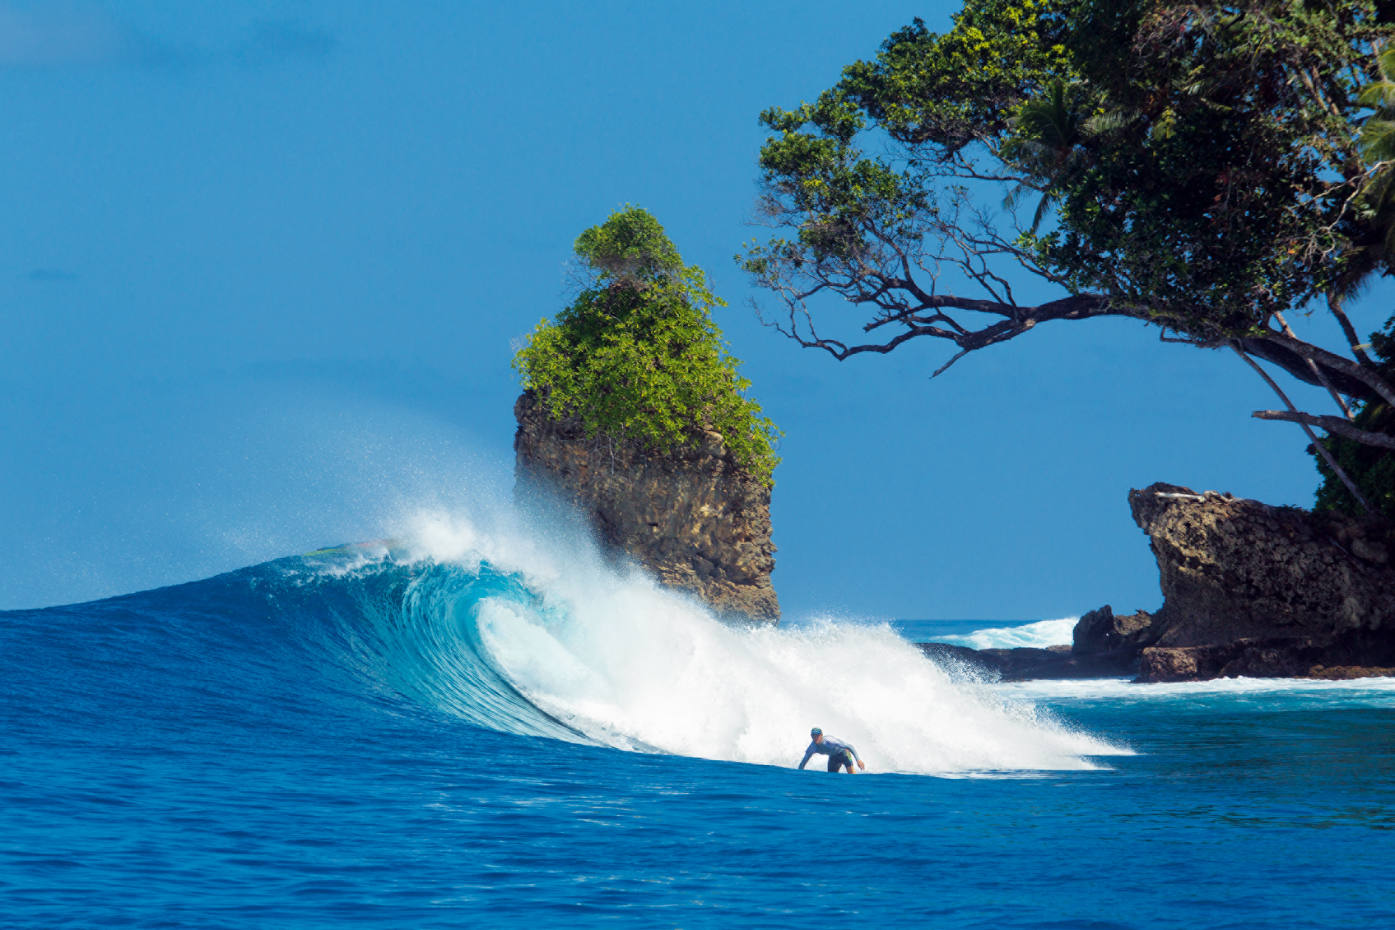 Quality breaks abound in the Telo archipelago, off Sumatra, home to Pinnacles on Telo resort